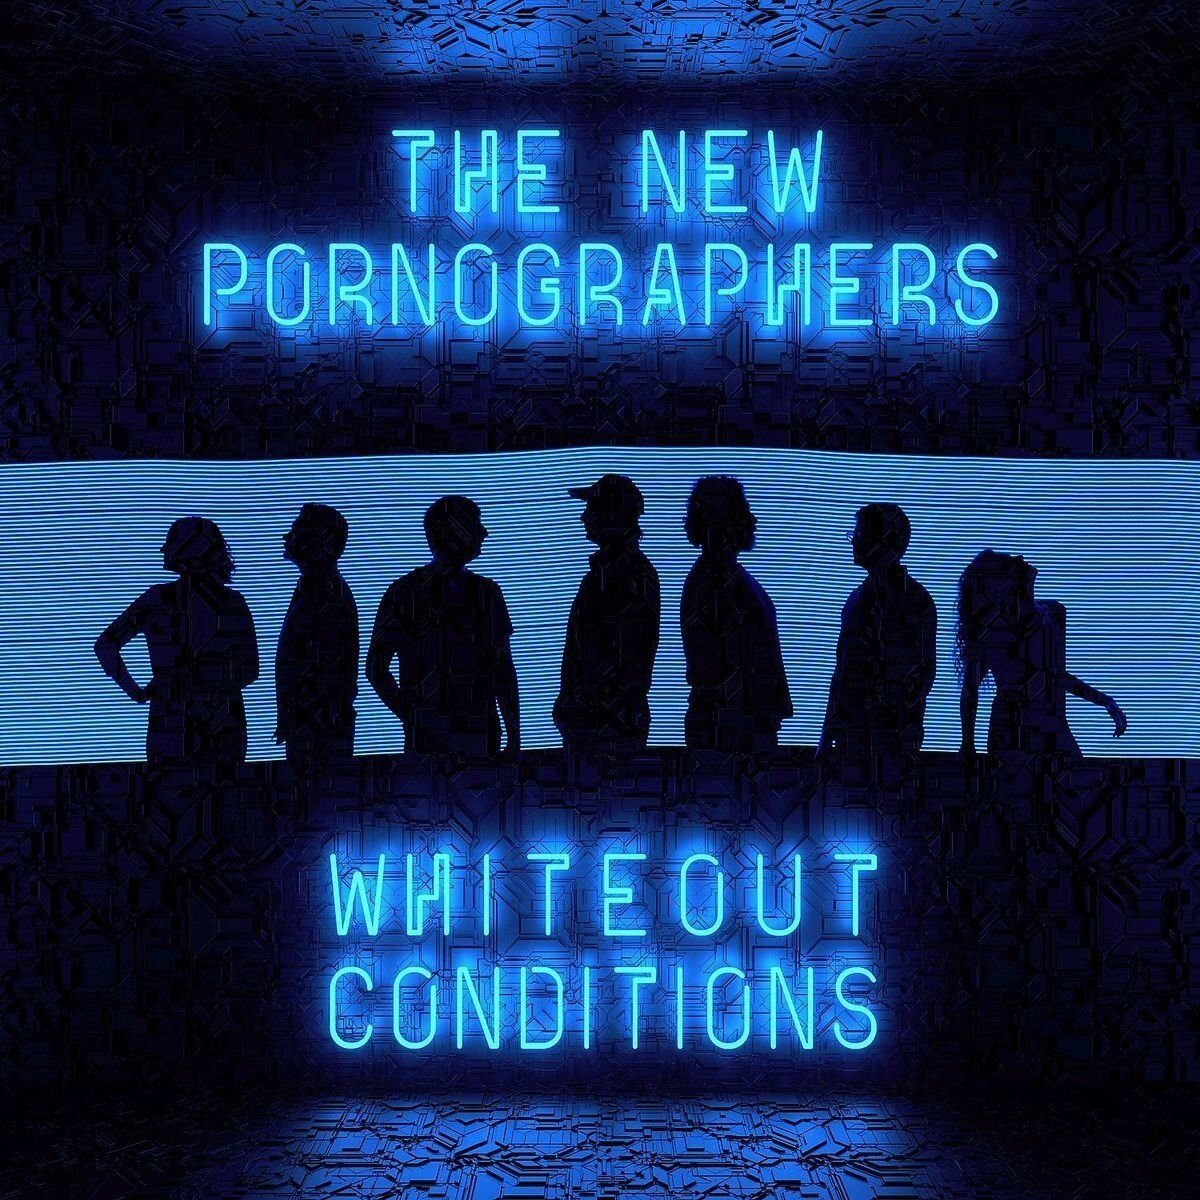 THE NEW PORNOGRAPHERS – Whiteout Conditions (2017)